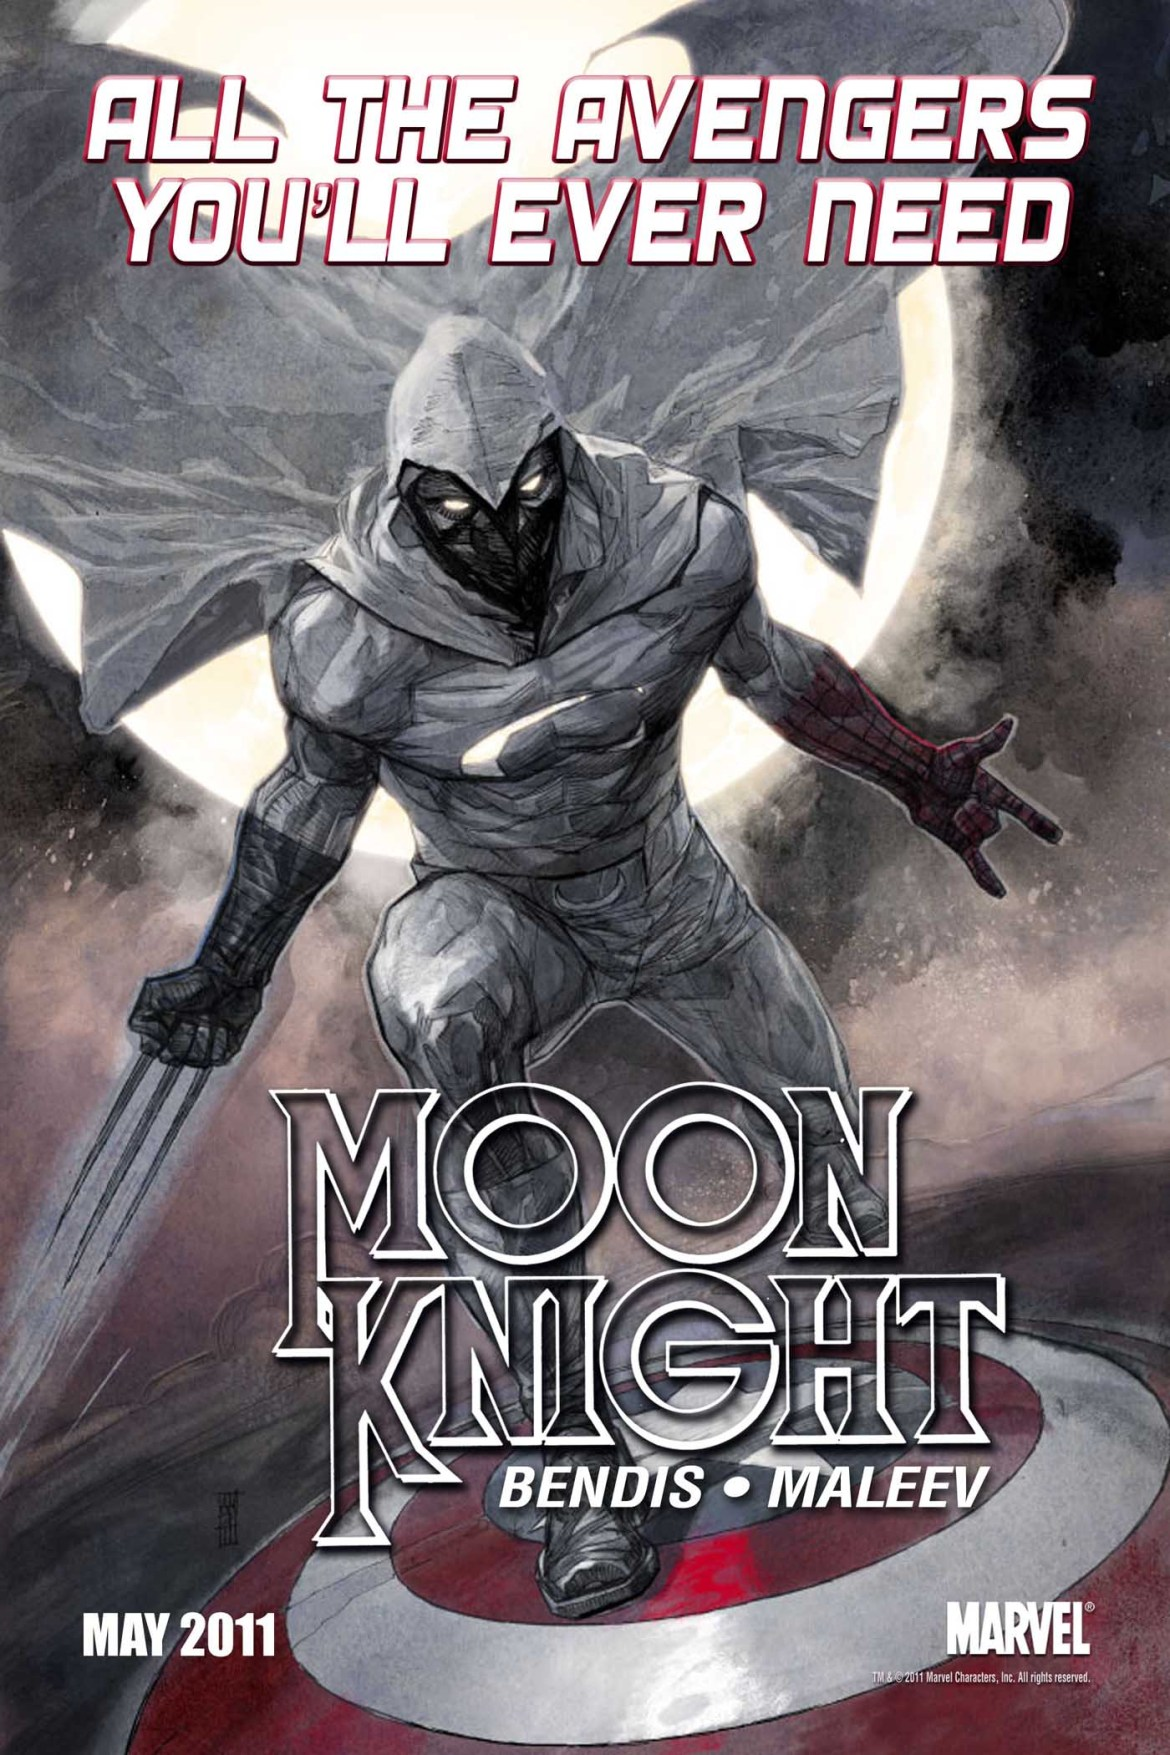 MK_Teaser Moon Knight Teaser: All The Avengers You'll Ever Need